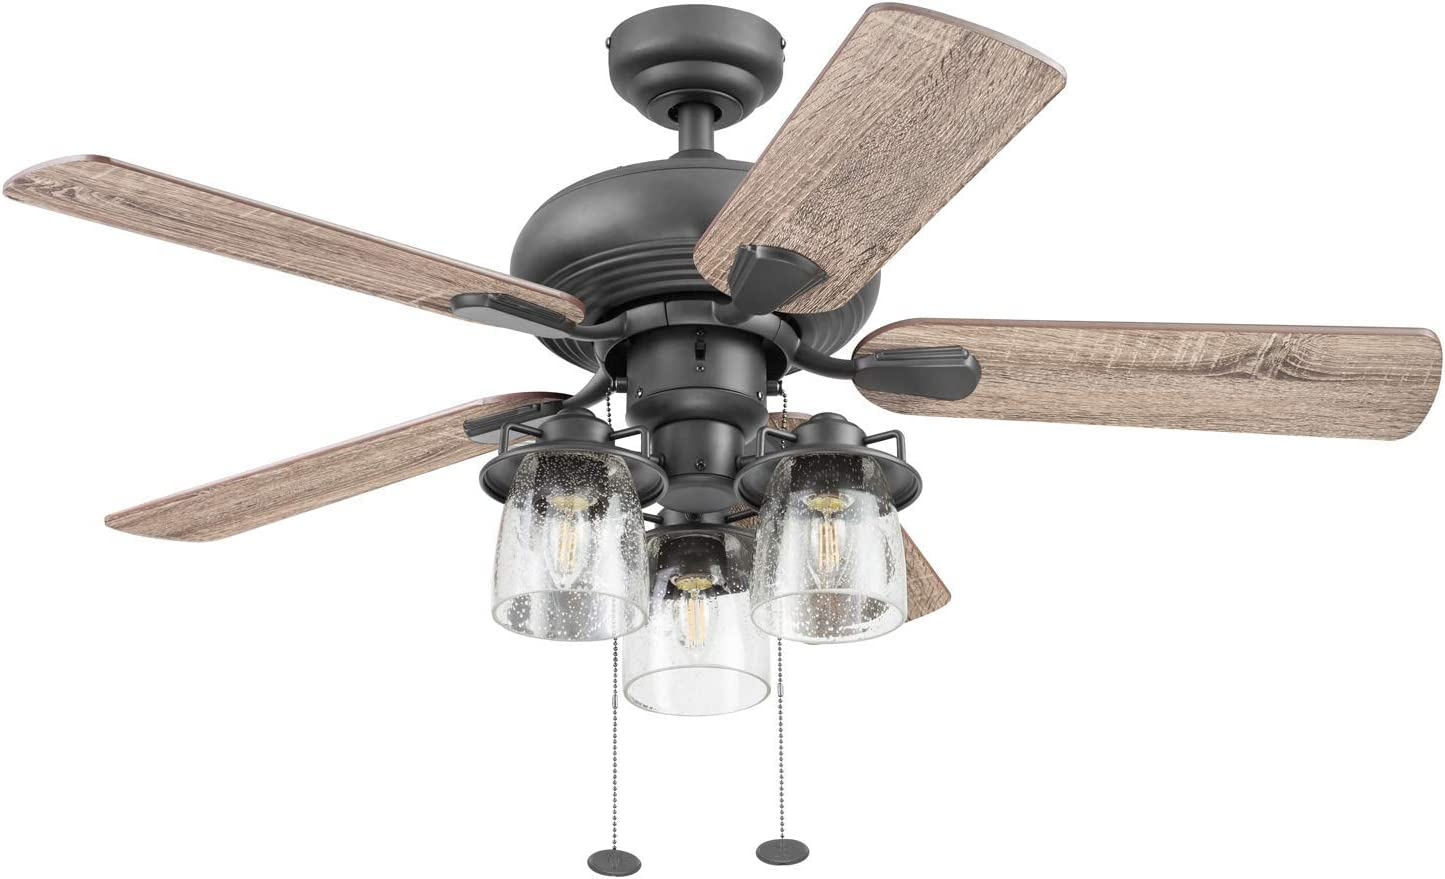 Prominence Home 51431-01 Crown Ceiling Fan, 42, Bronze